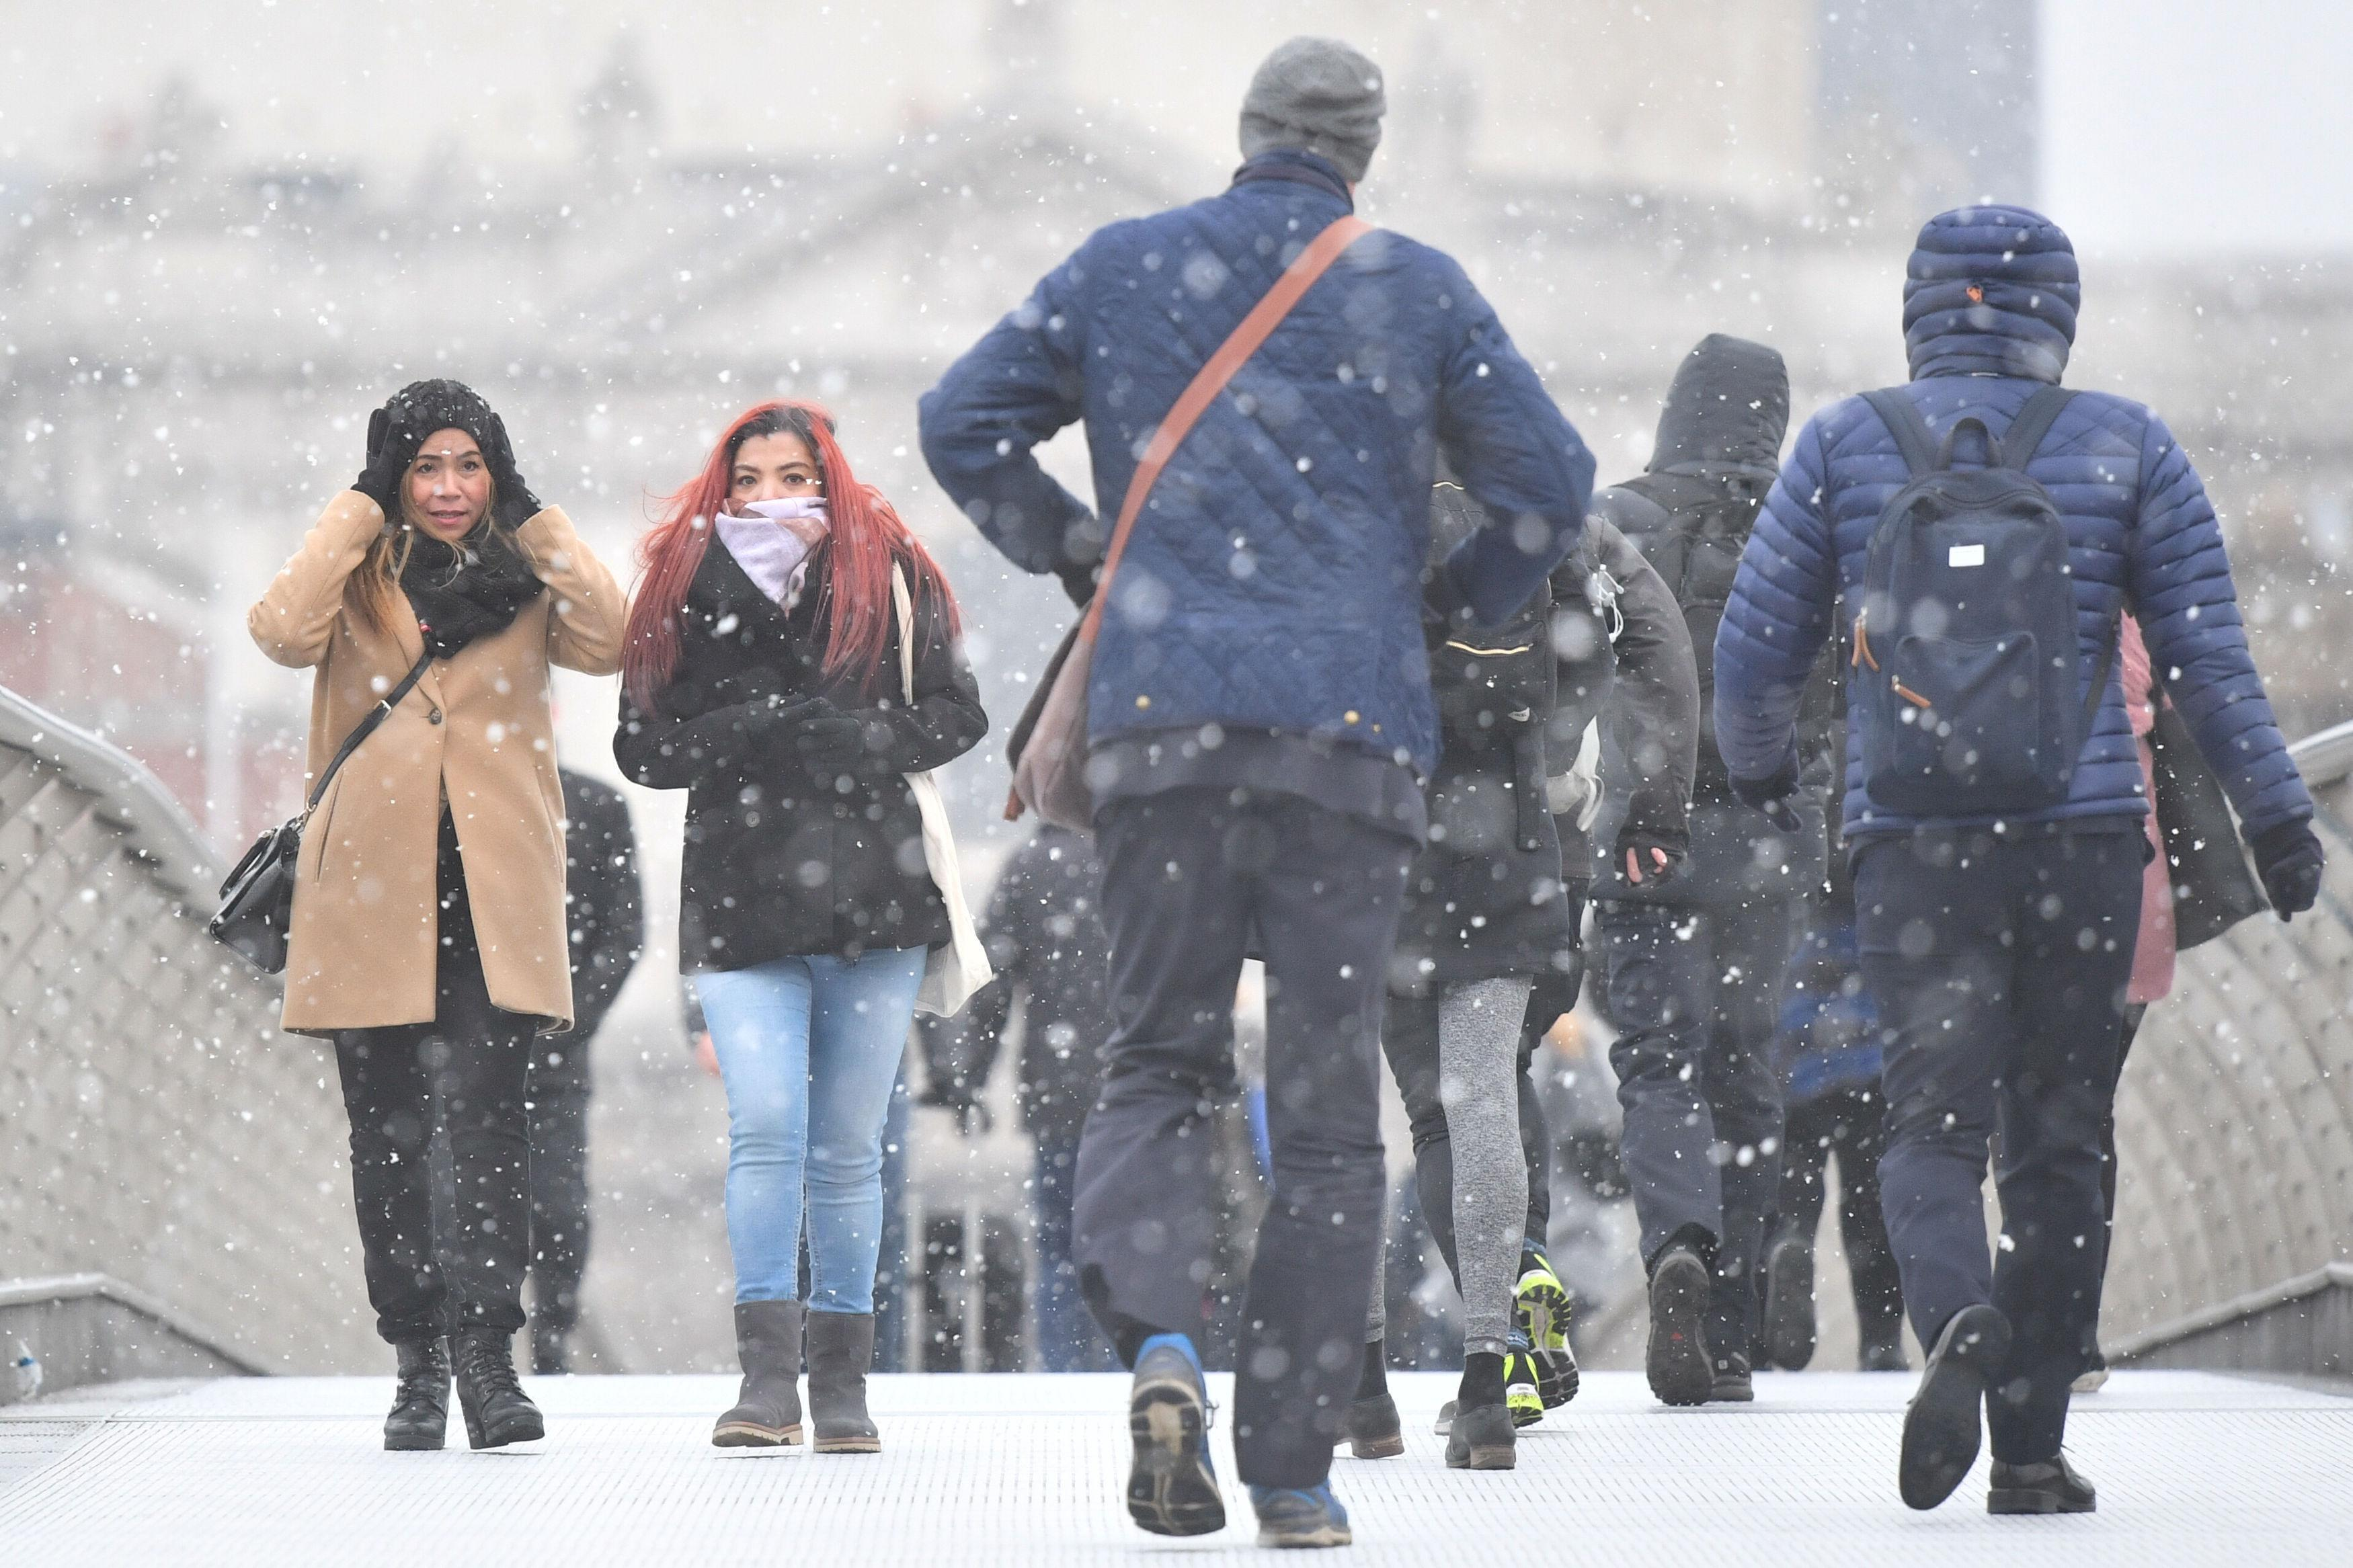 Commuters get caught up in the snow on the Millennium Bridge in London on Monday morning (Picture: PA)